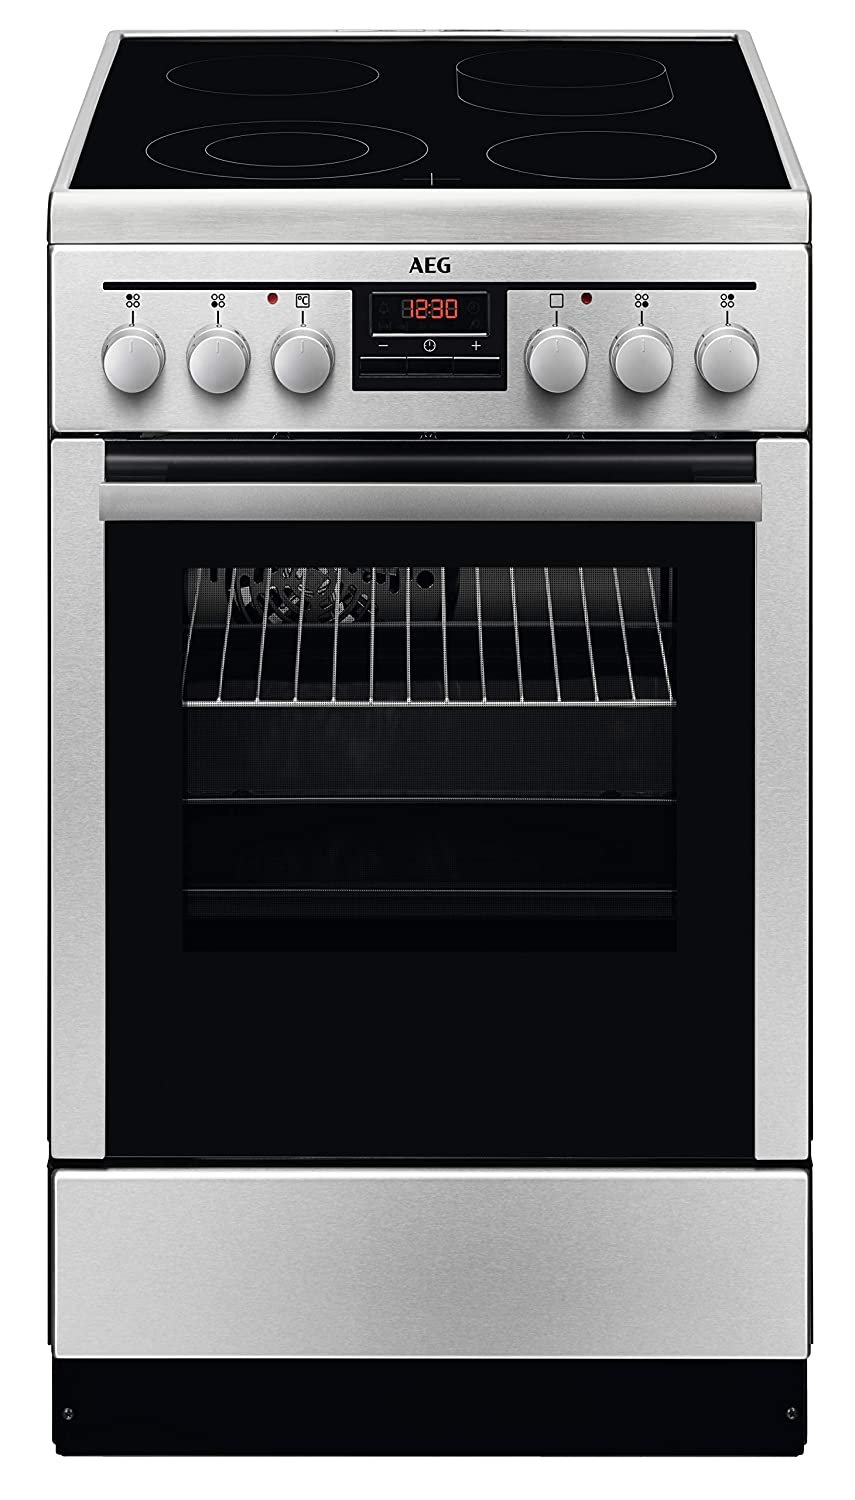 Aeg Electrolux Competence 47095vd Mn Stove Cooktop Combination